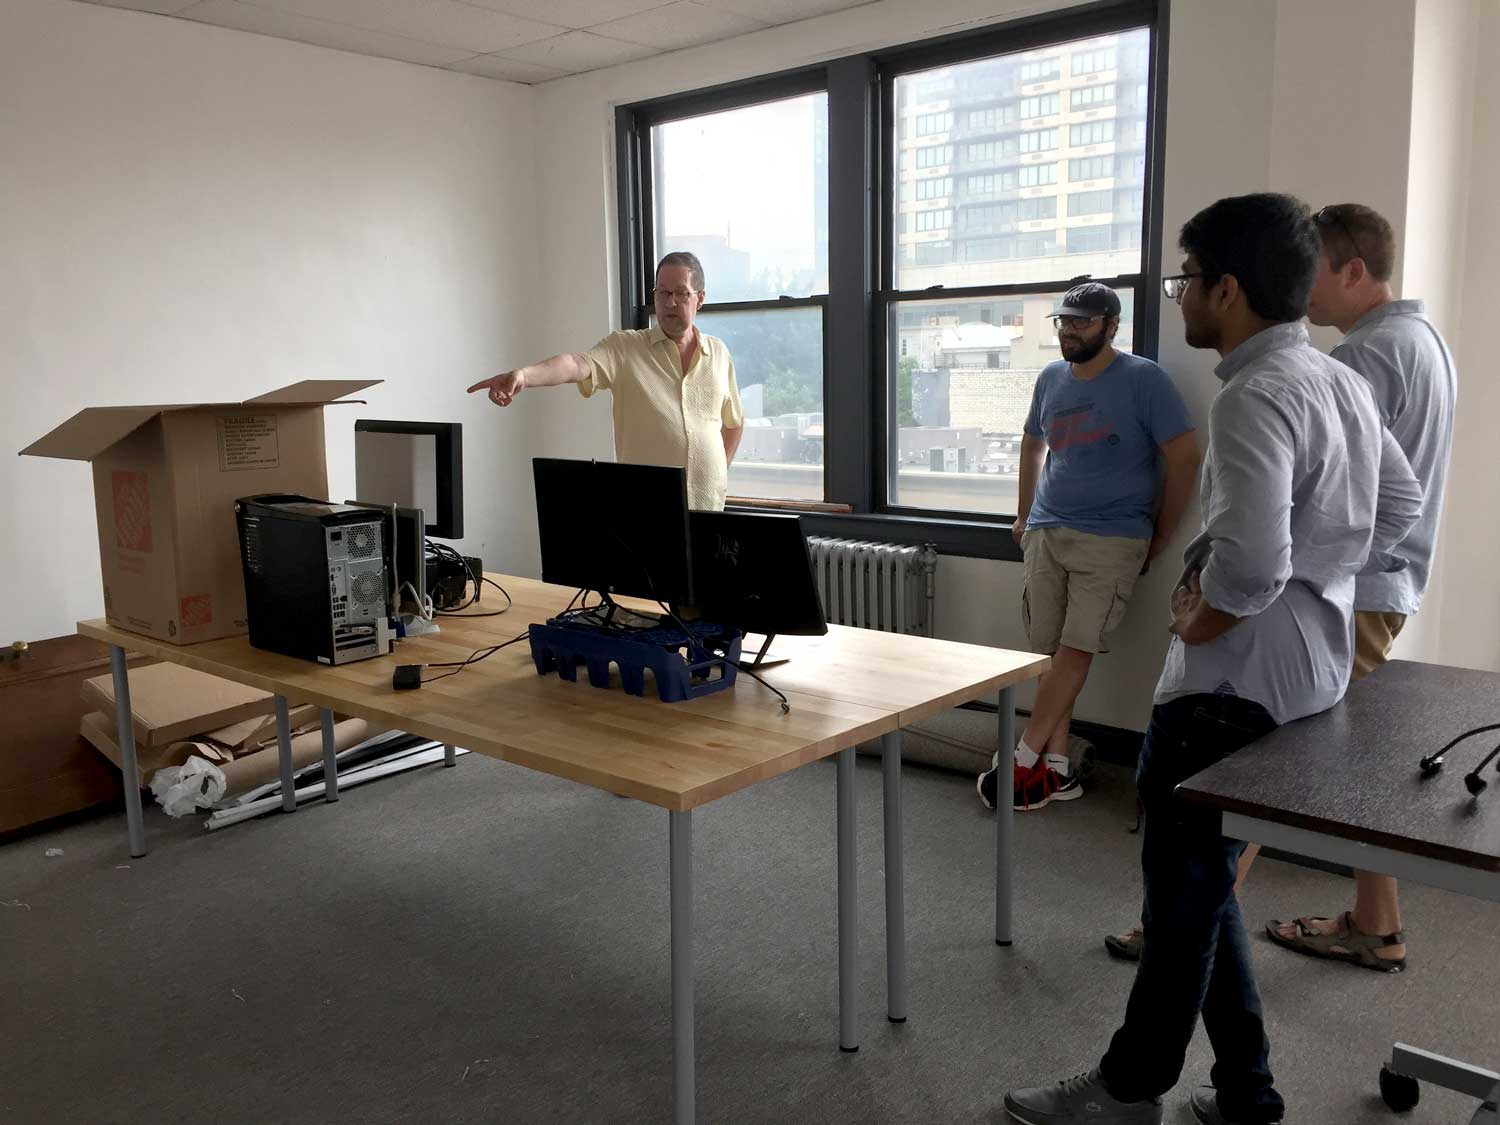 Juggling the pieces of a new office can be challenging